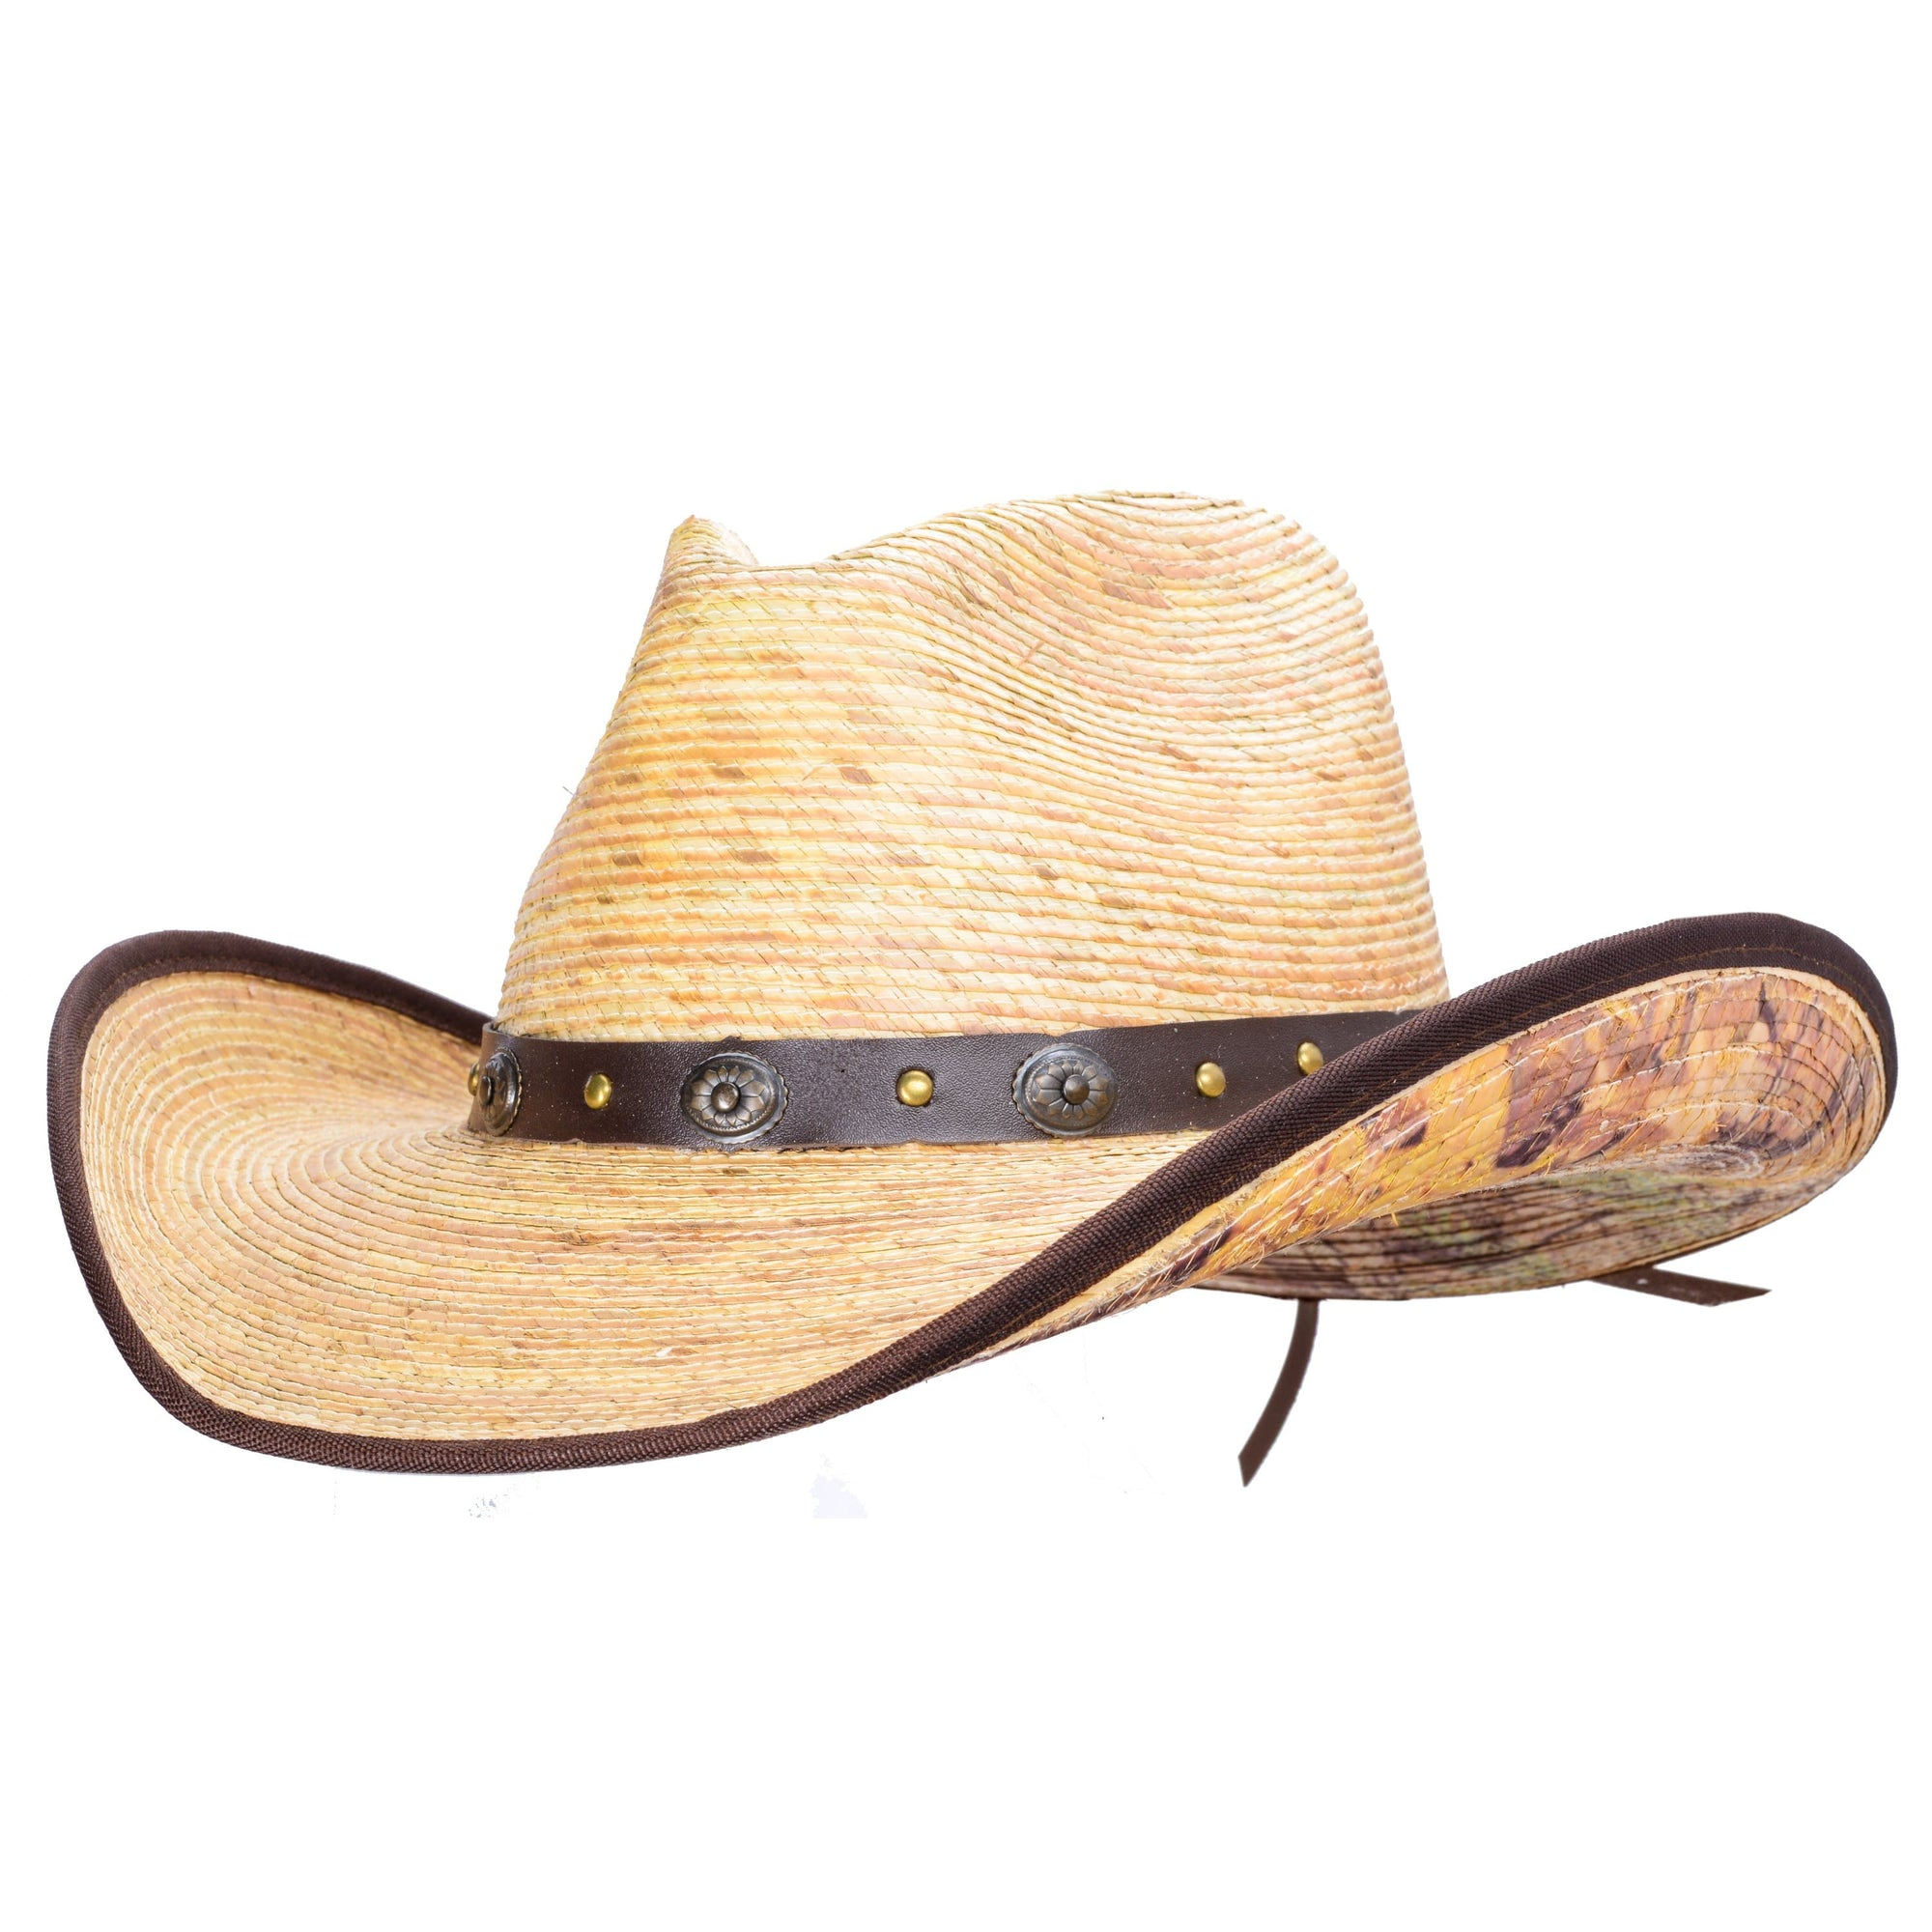 Natural palm cowboy hat with woodsy camo print on the underside